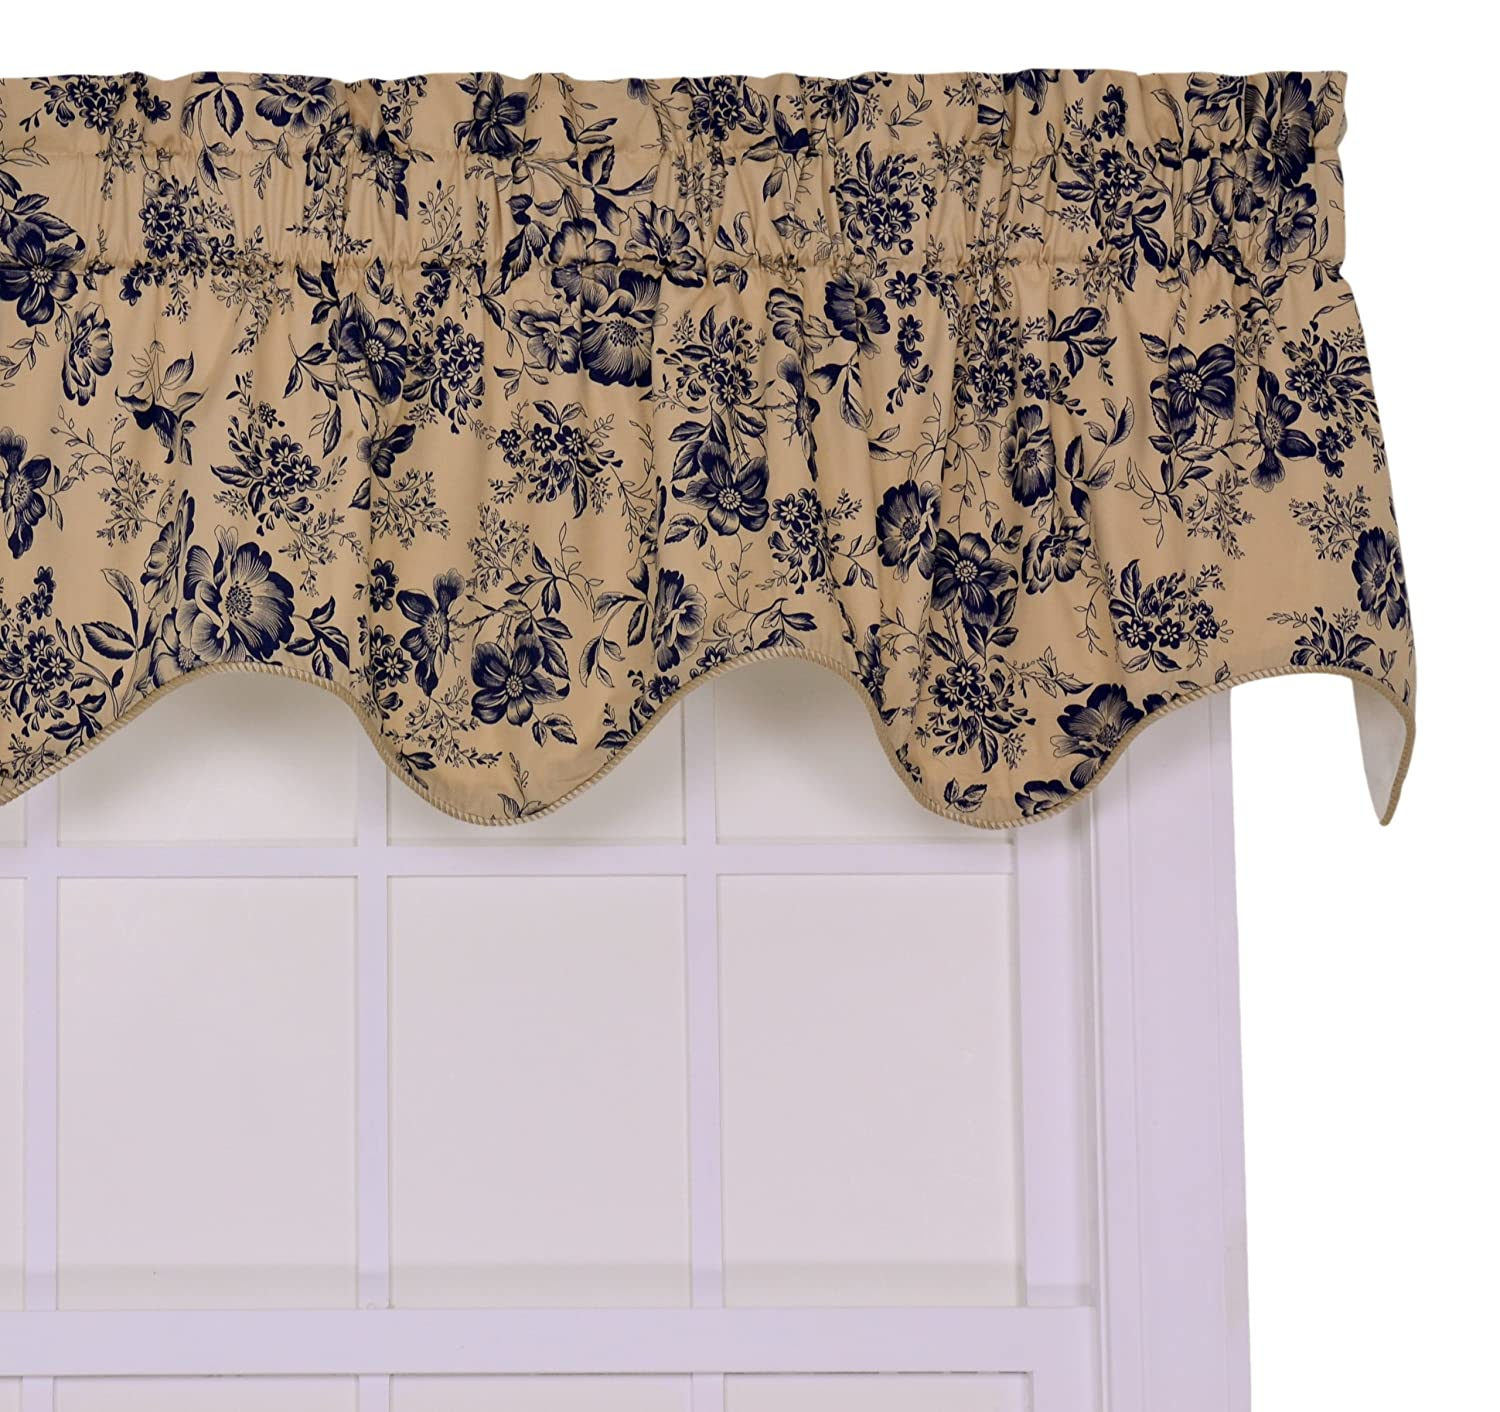 Ellis Curtain Palmer Floral Toile Lined Duchess Valance Window Curtain, Navy